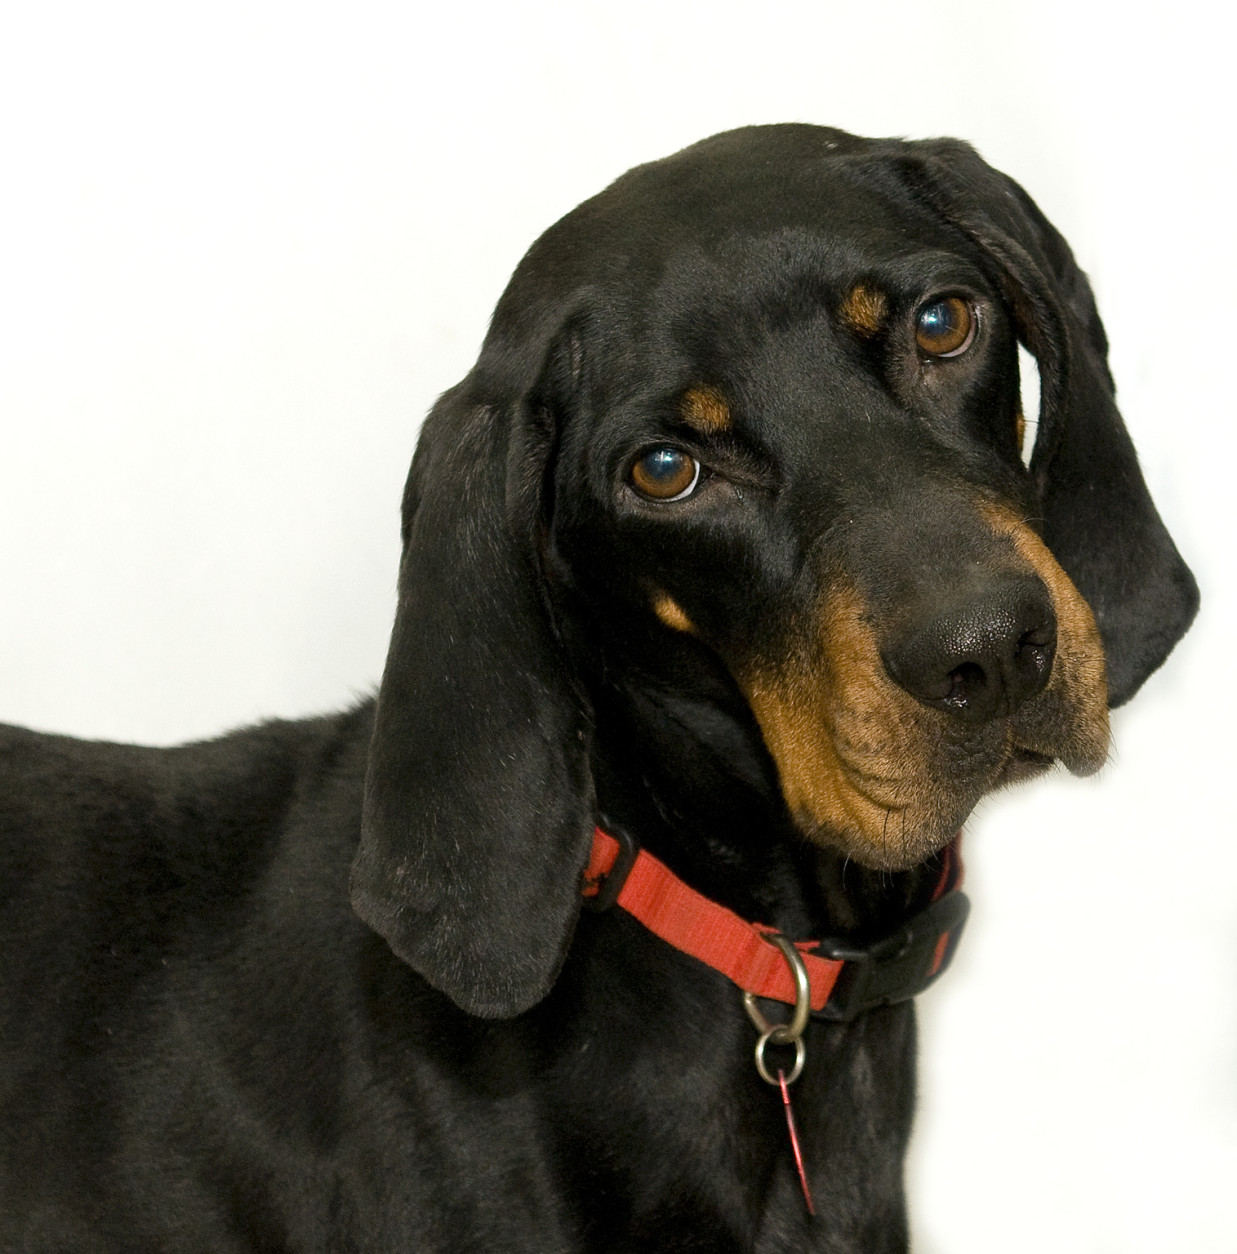 Lindy is a 3-year-old hound mix available for adoption at the Washington Animal Rescue League. (Courtesy WARL)